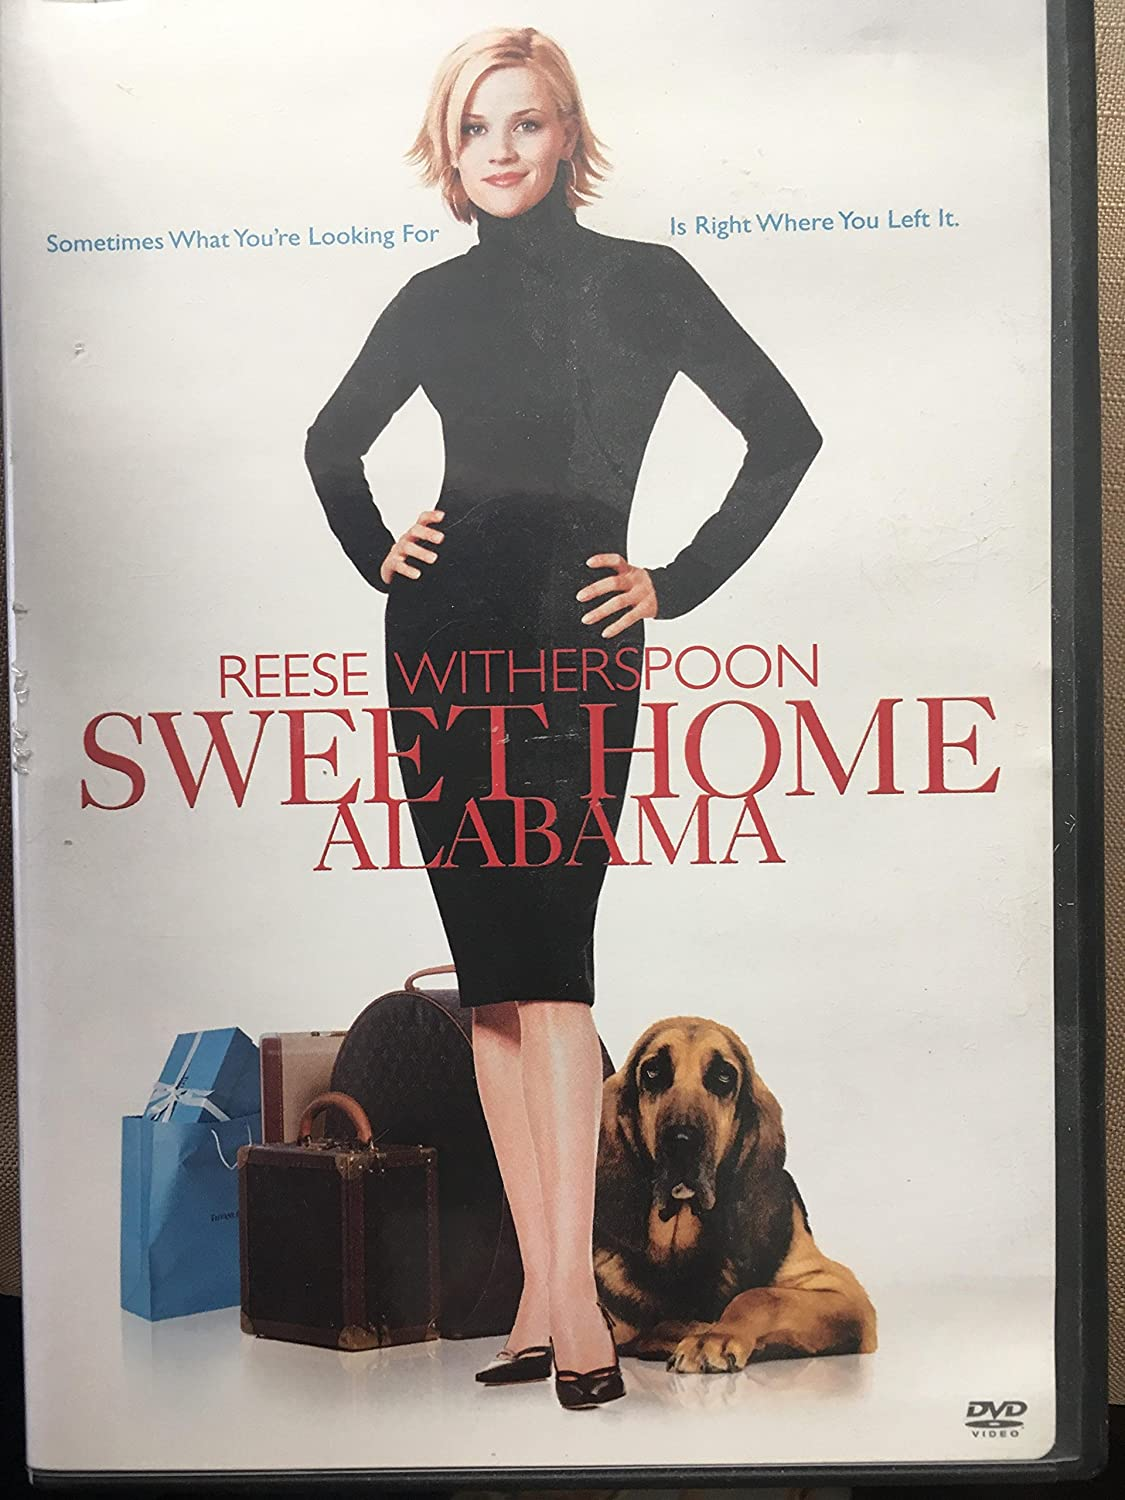 Sweet Home Alabama (DVD / WS 2.35 Anamorphic / DD 5.1 / FR-DUB) Reese Witherspoon; Patrick Dempsey; Josh Lucas; Fred Ward; Mary Kay Place; Ethan Embry; Jean Smart; Rhona Mitra; Candice Bergen; Katherine Towne